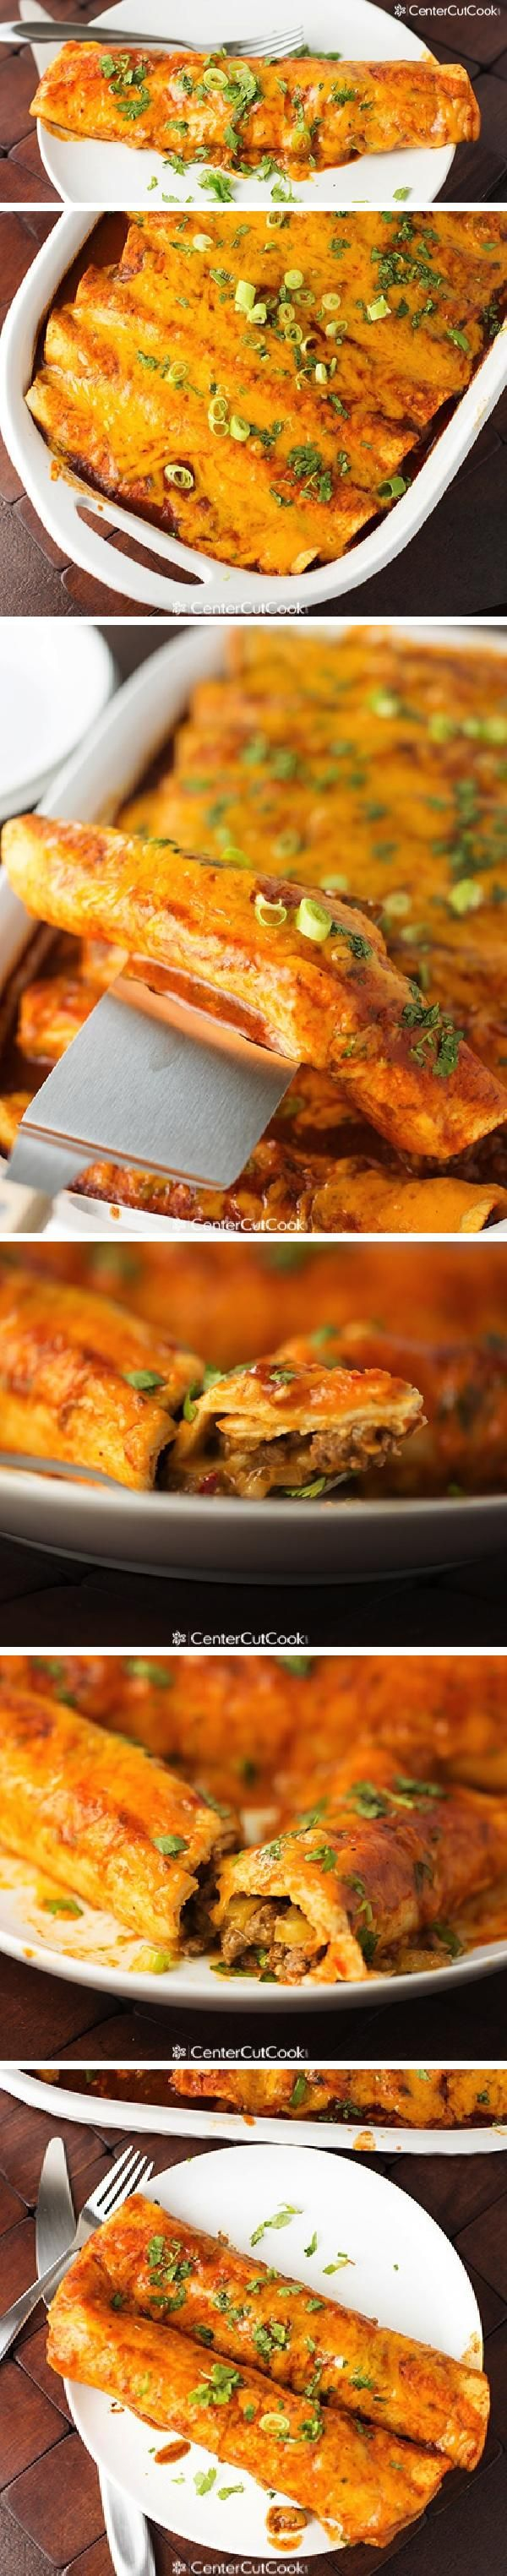 SPICY CHEESE and BEEF ENCHILADAS are just oozing with a spicy beef filling, and lots of gooey cheddar cheese!